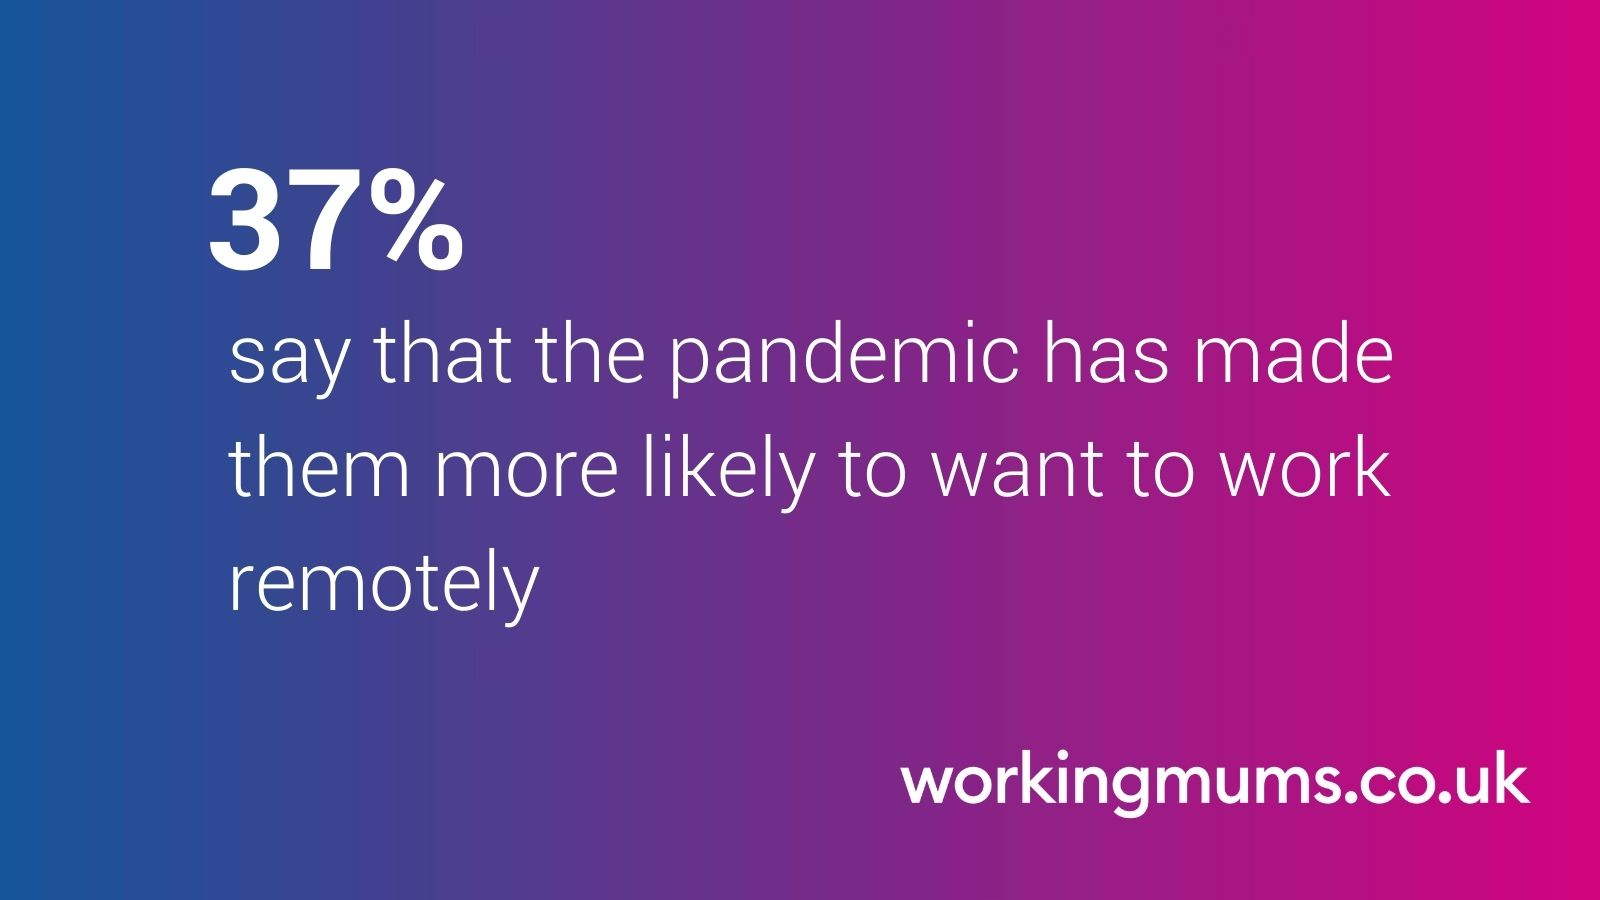 37% say that the pandemic has made them more likely to want to work remotely